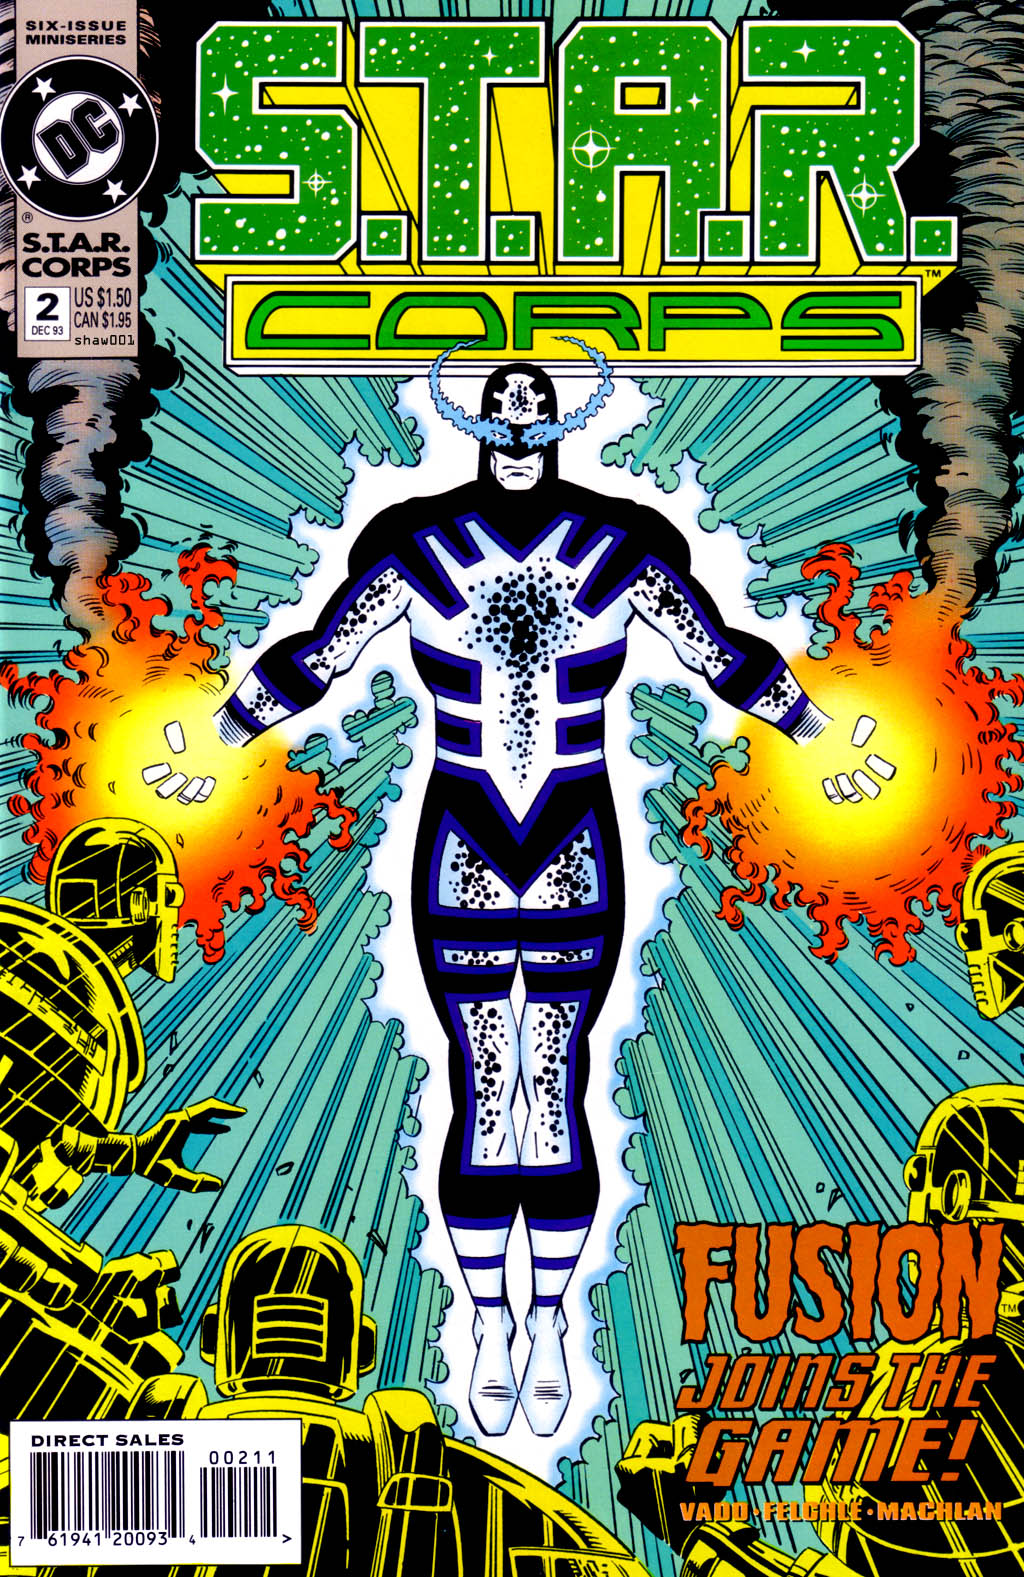 Read online S.T.A.R. Corps comic -  Issue #2 - 1